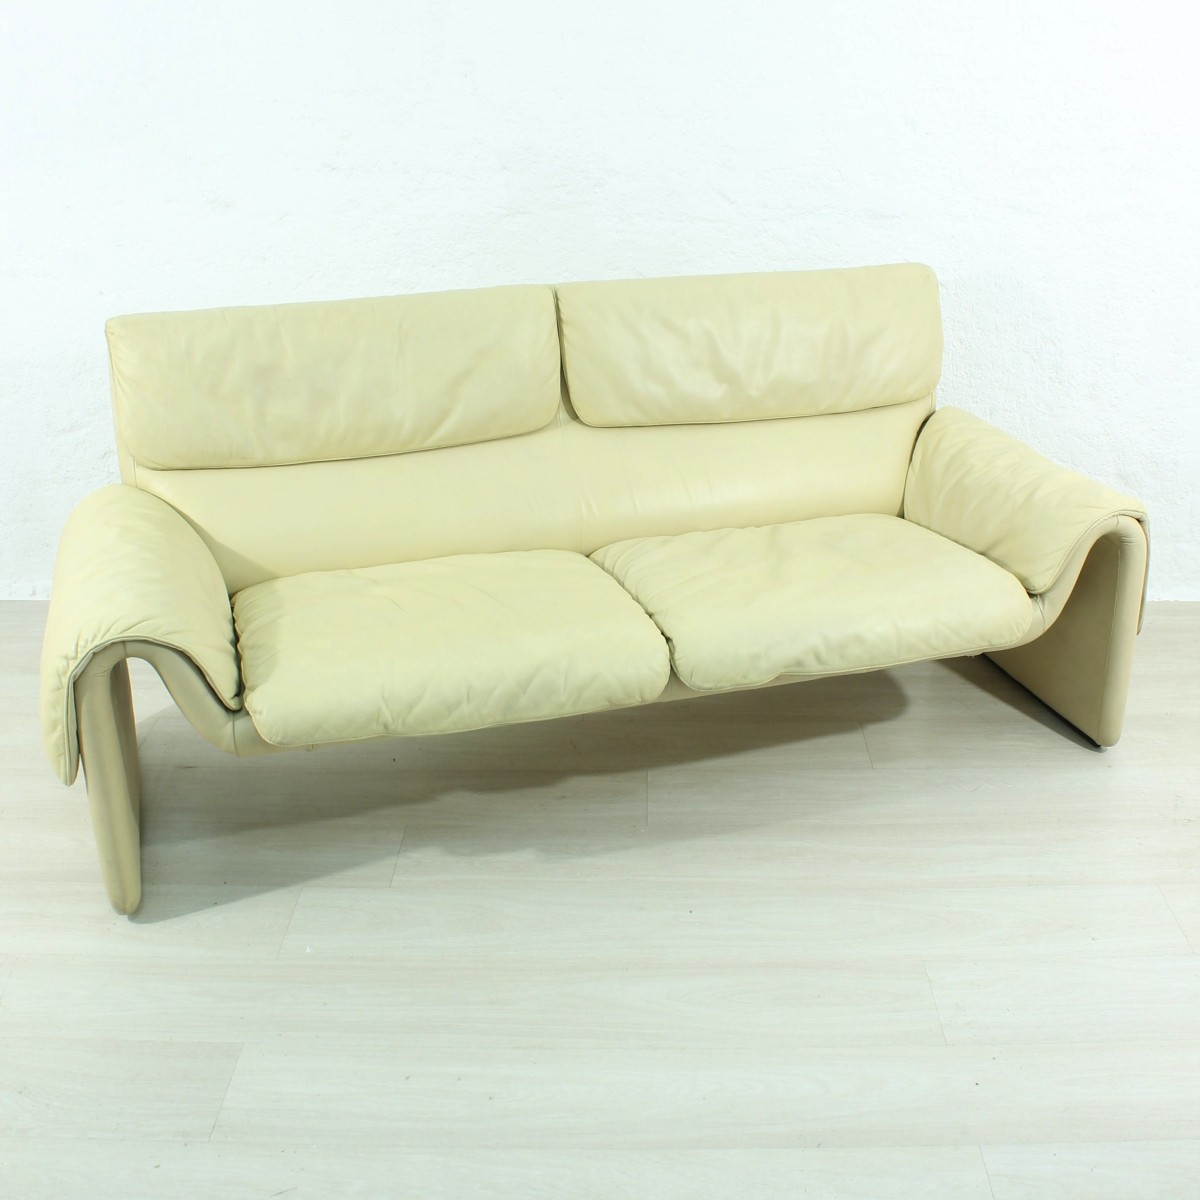 - Swiss Leather Couch For De Sede